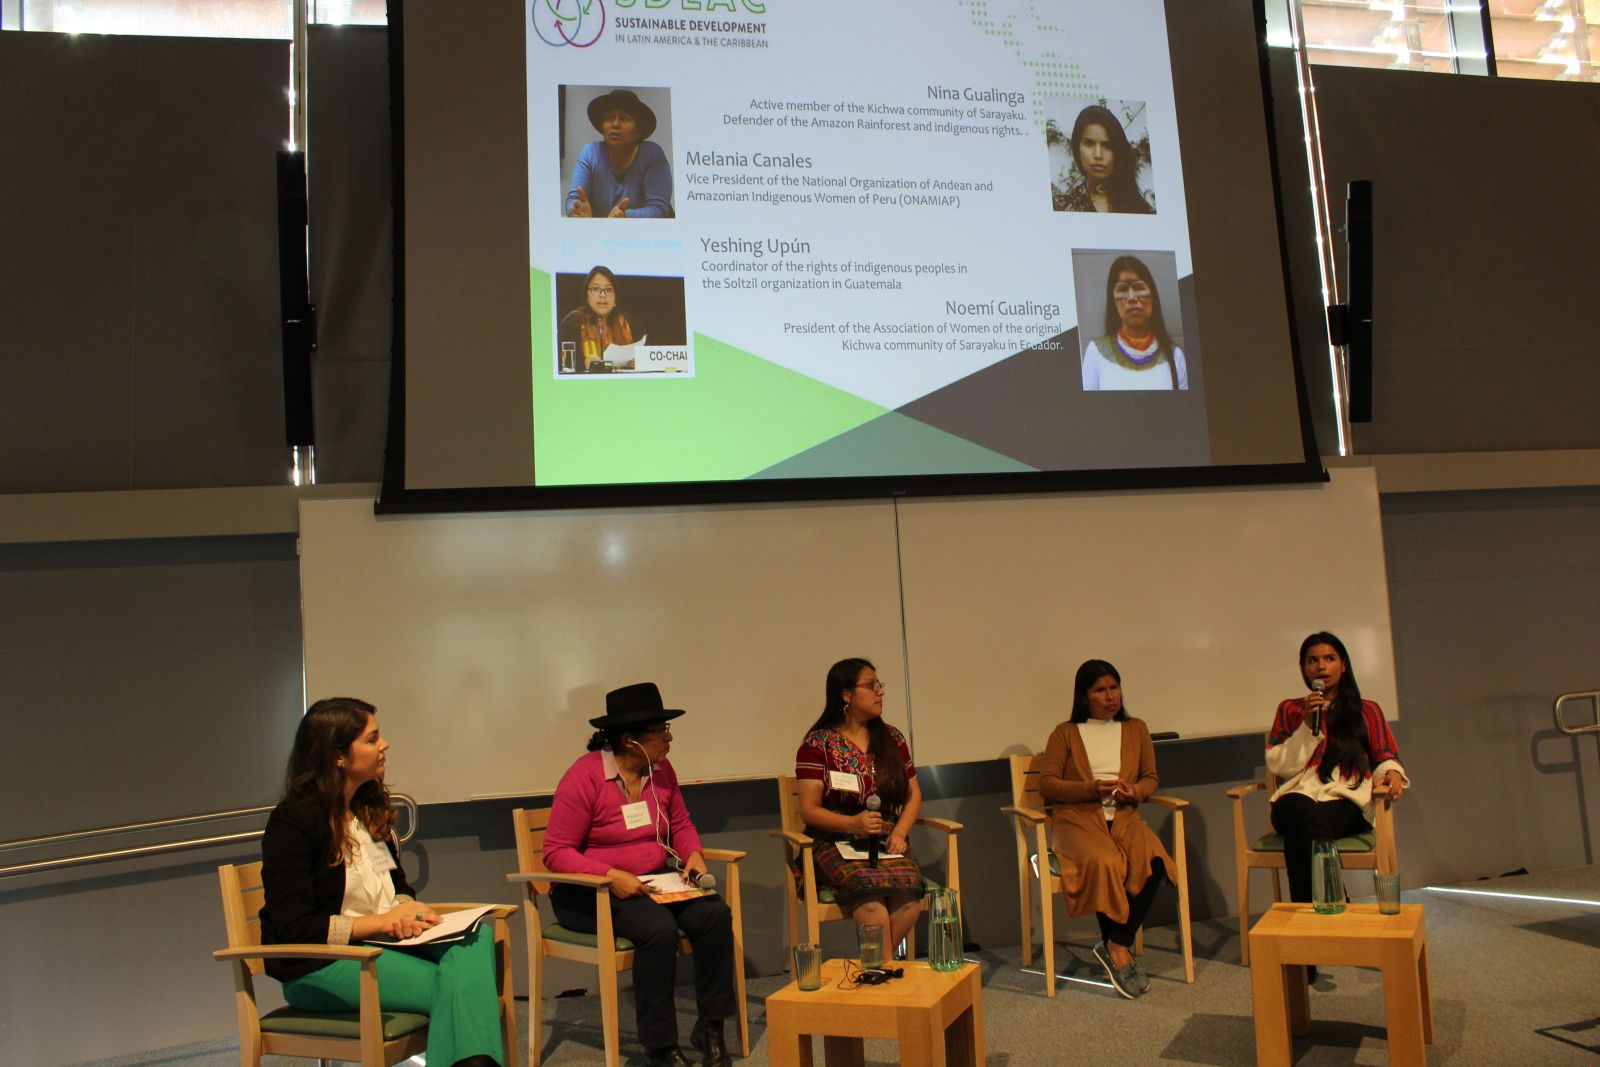 All the speakers of Panel 3 came together in a conversation about female indigenous identities and empowerment, facilitated by Anna Carcamo (MEM '19).